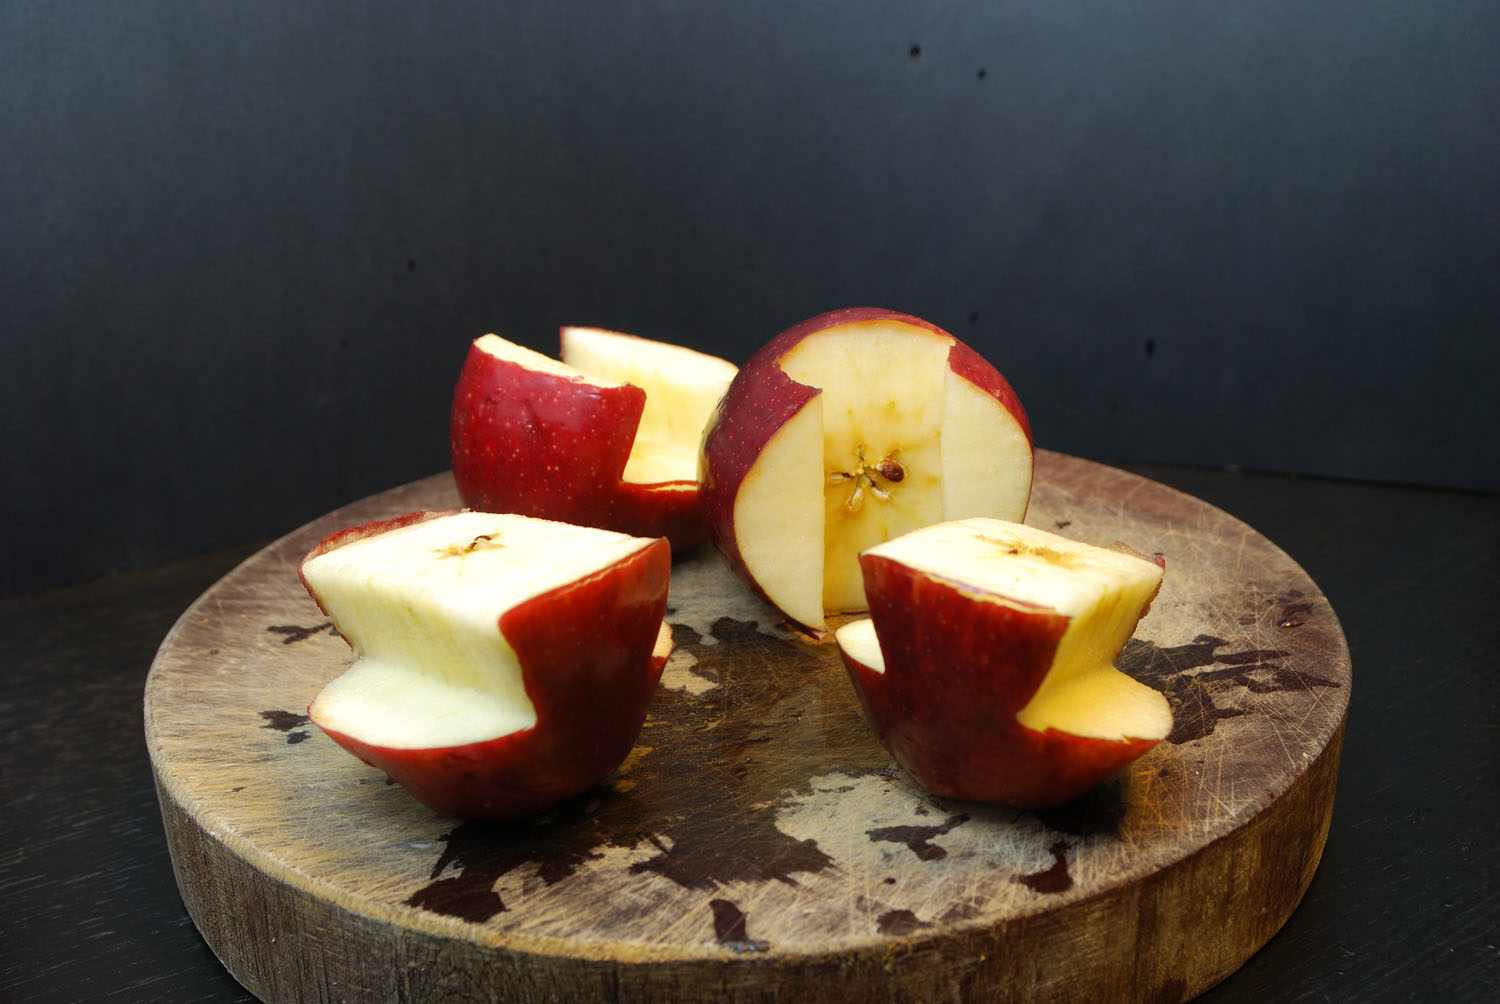 5. Swap the parts between the two apples.